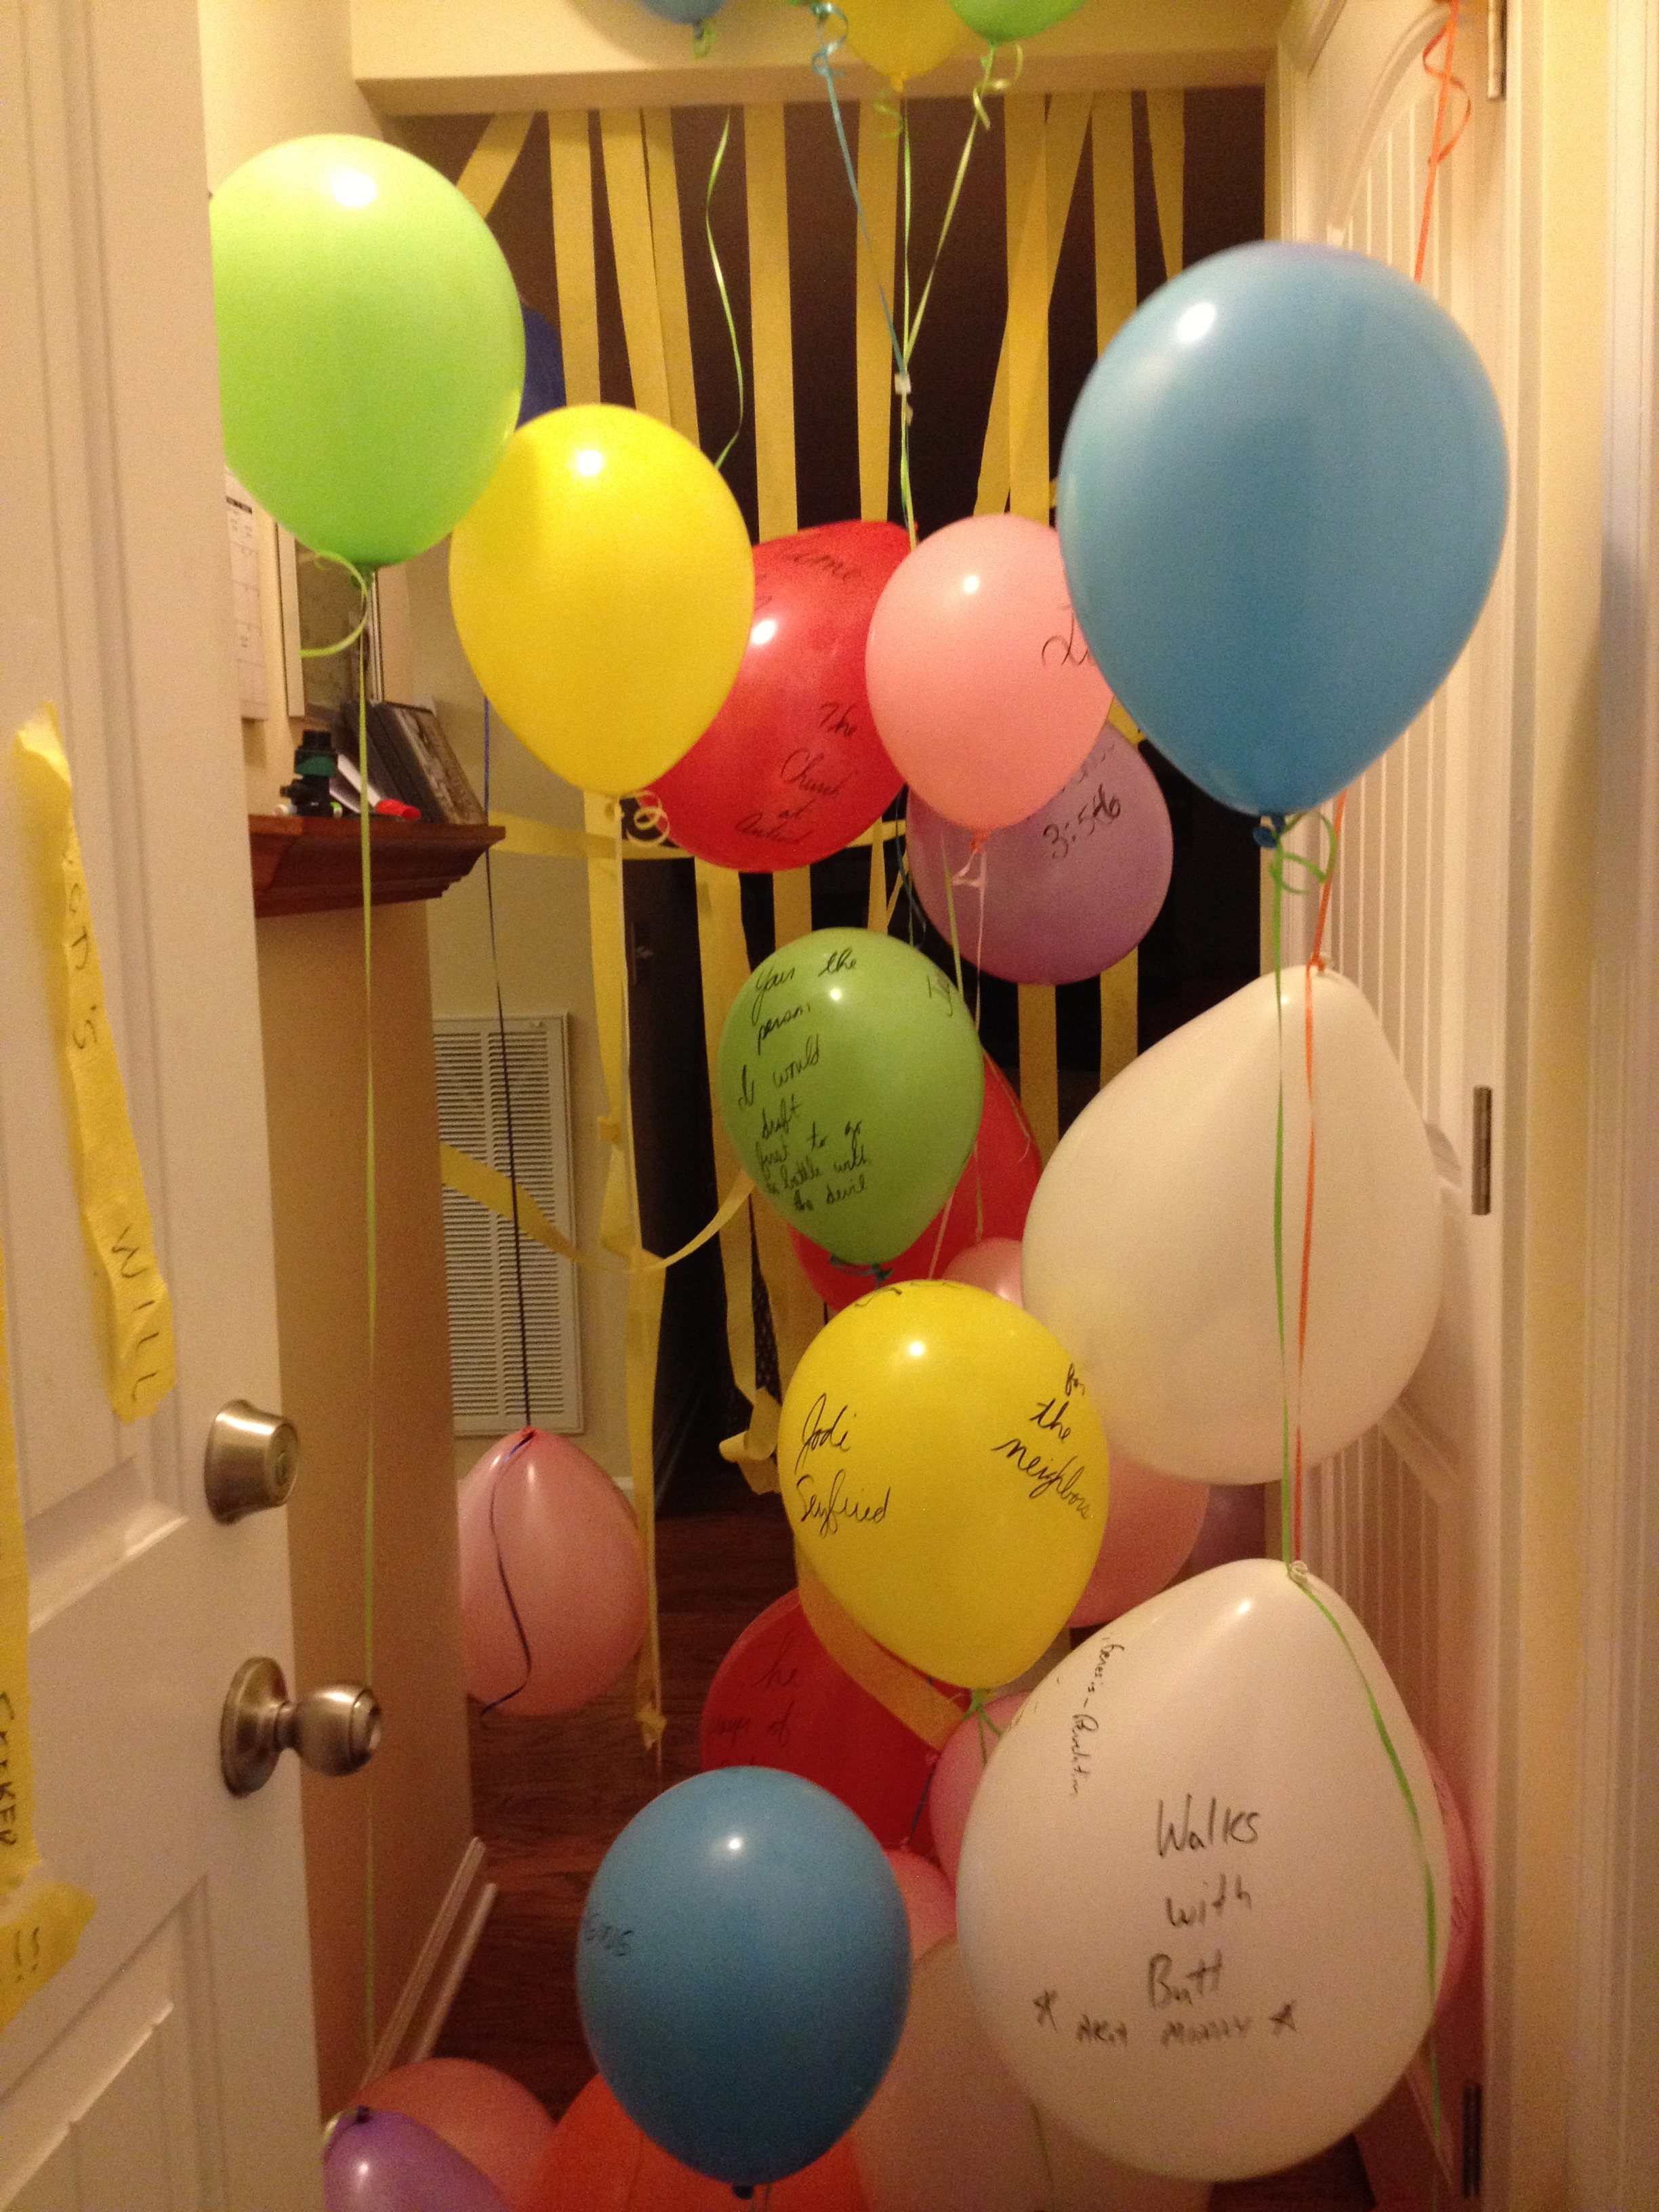 Balloons in Doorway